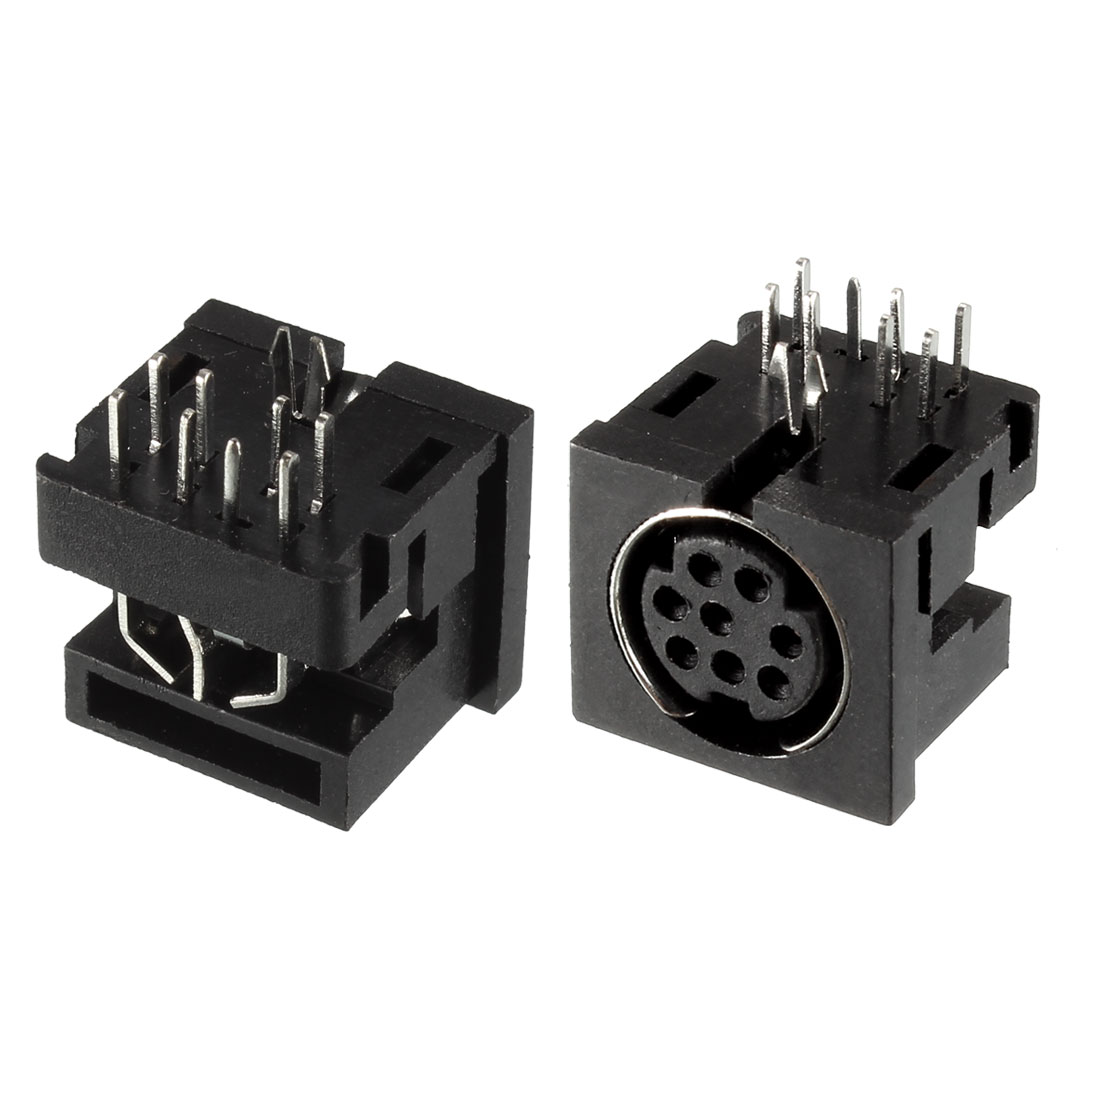 DIN 8 Pin Female S-video PCB Mounted Sockets Connectors 2 Pcs